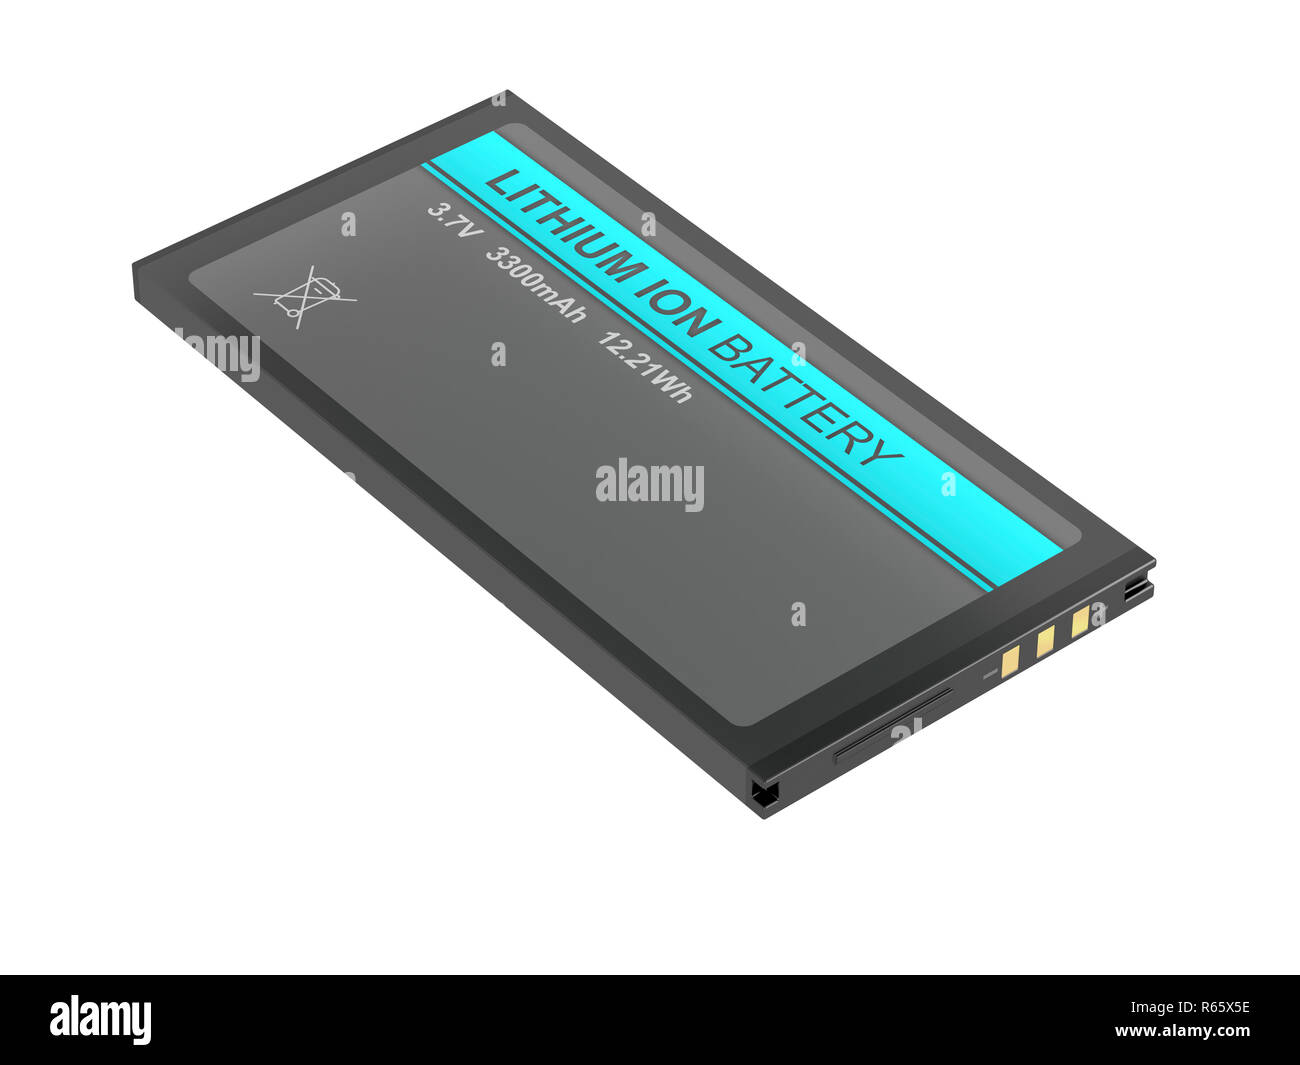 Liion Battery Stock Photos & Liion Battery Stock Images - Alamy